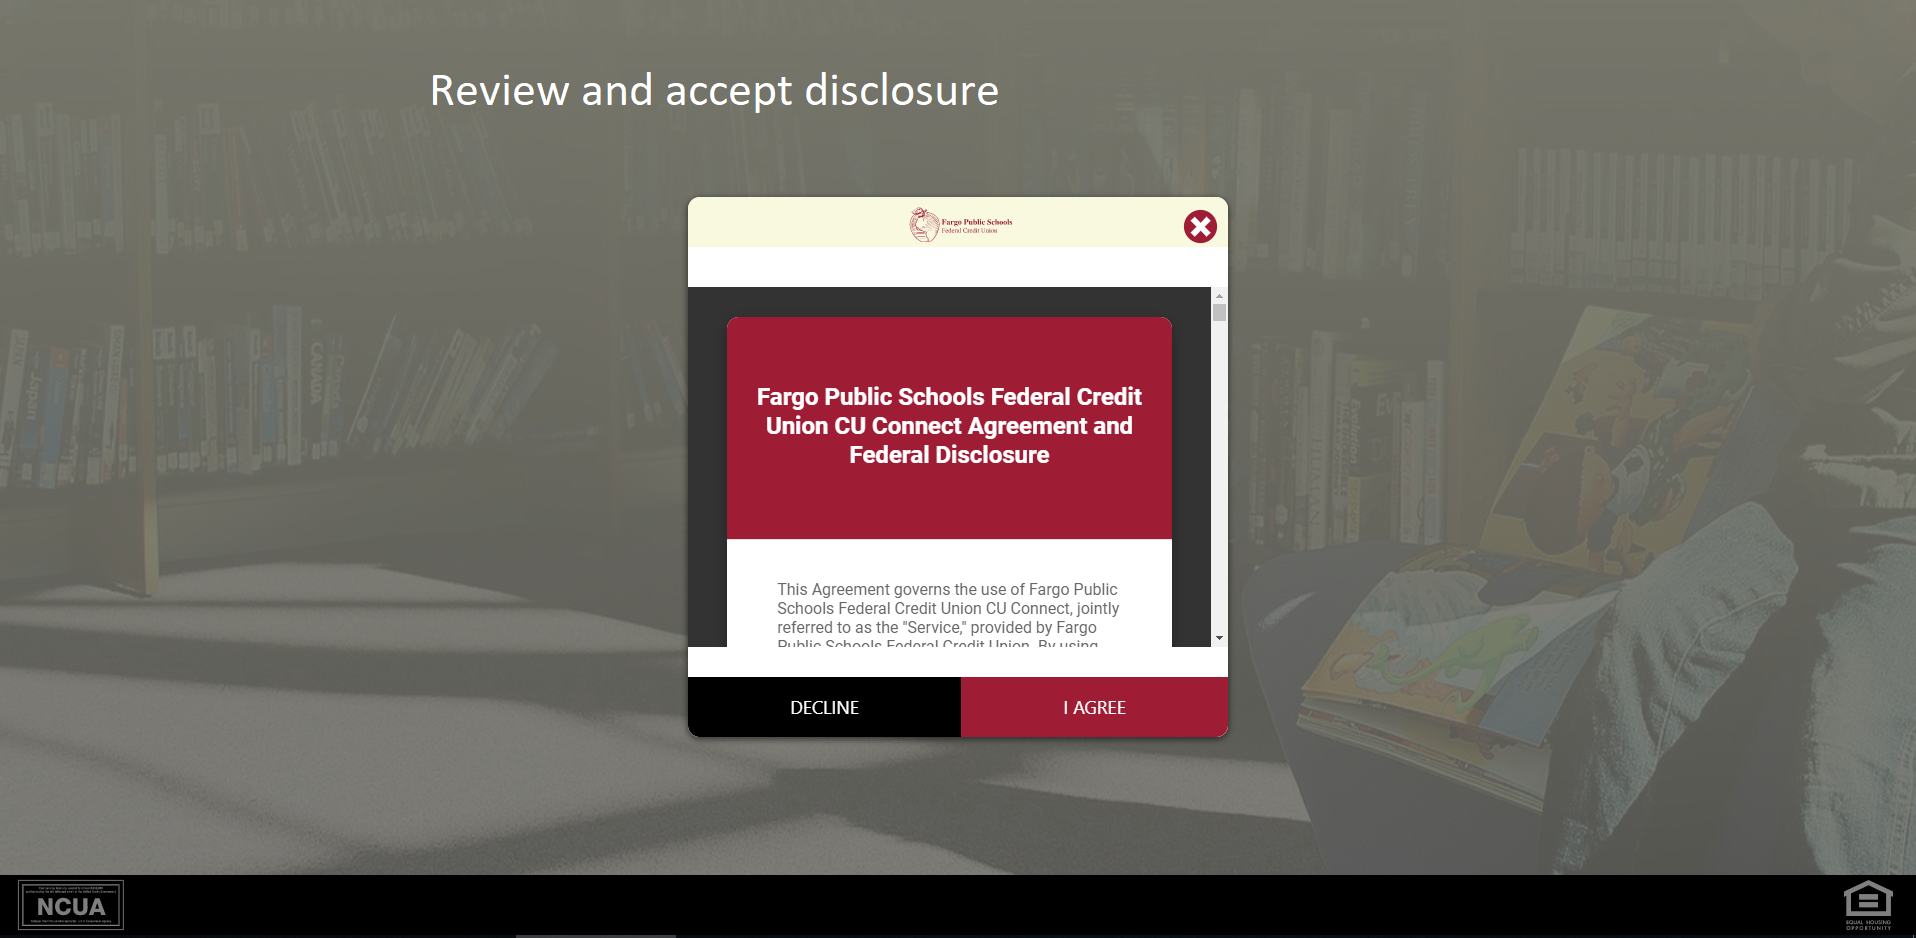 Screen shot of FPSFCU Disclosure agreement page - Review and accept disclosure.